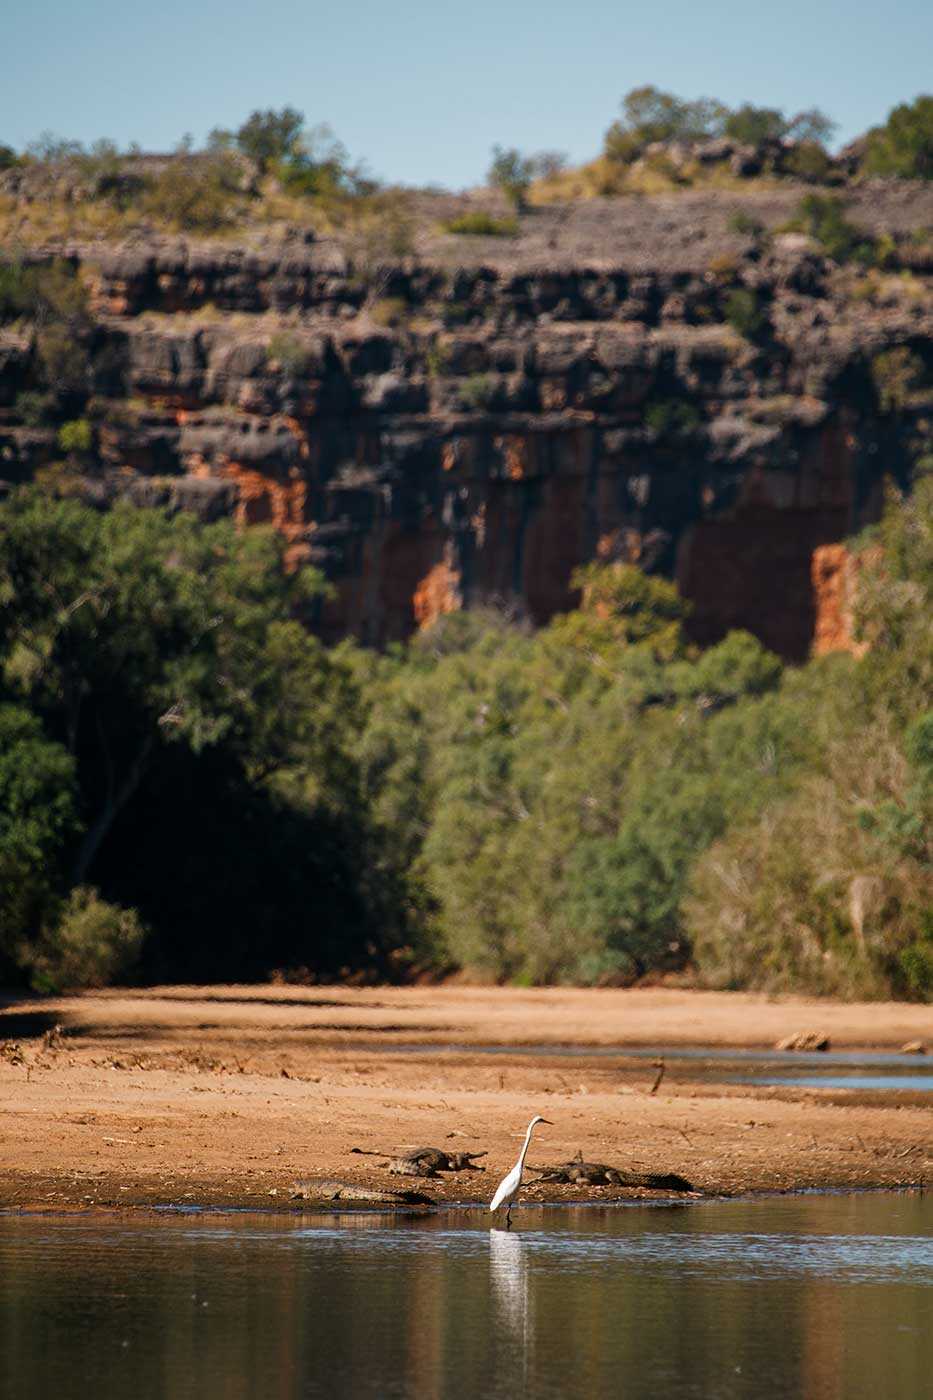 A white bird stands in shallow water near a sandy bank, where two crocodiles lie. High rock walls rise in the distance. - click to view larger image